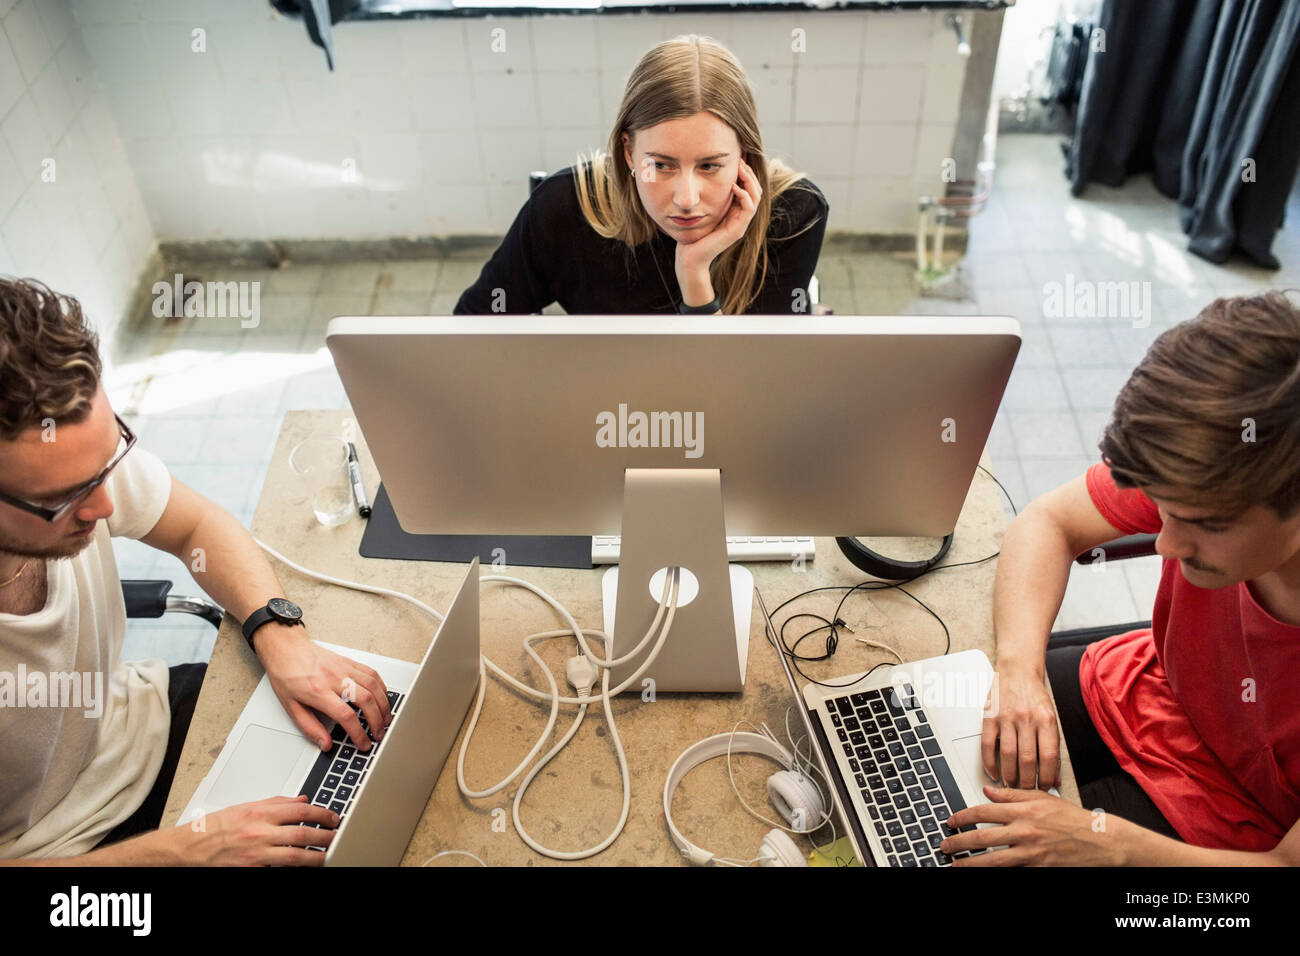 High angle view of young business people using technologies in creative office - Stock Image